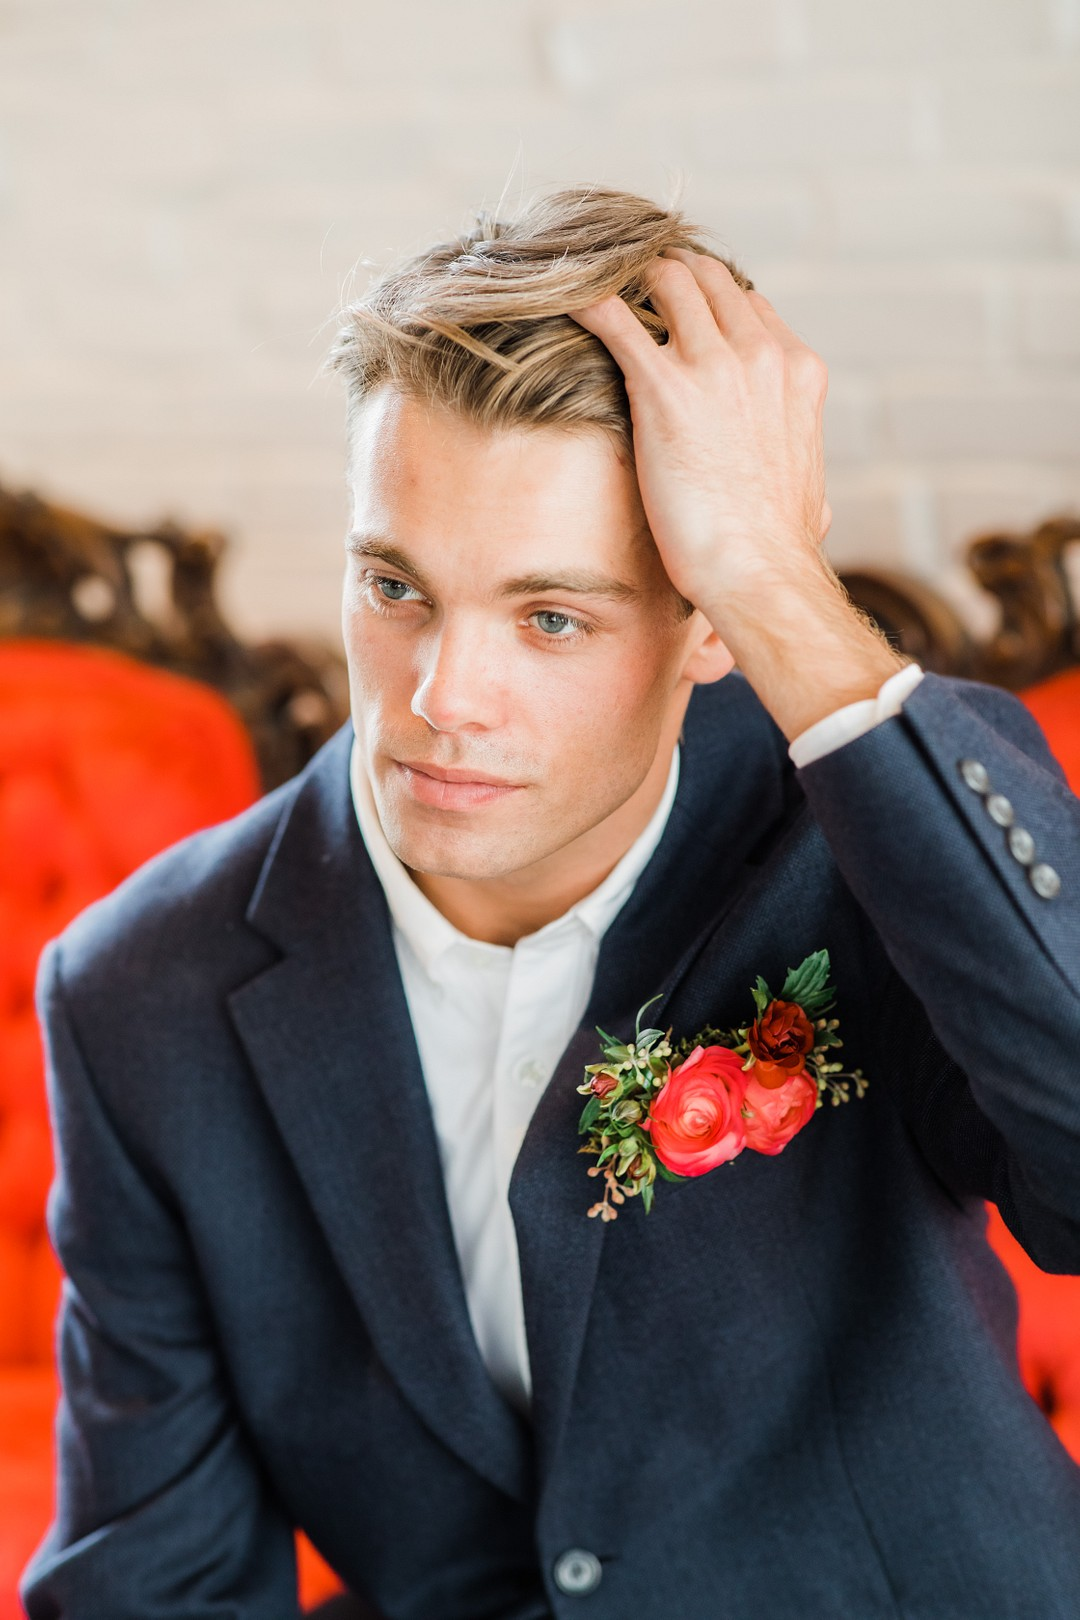 groom with a red boutonniere